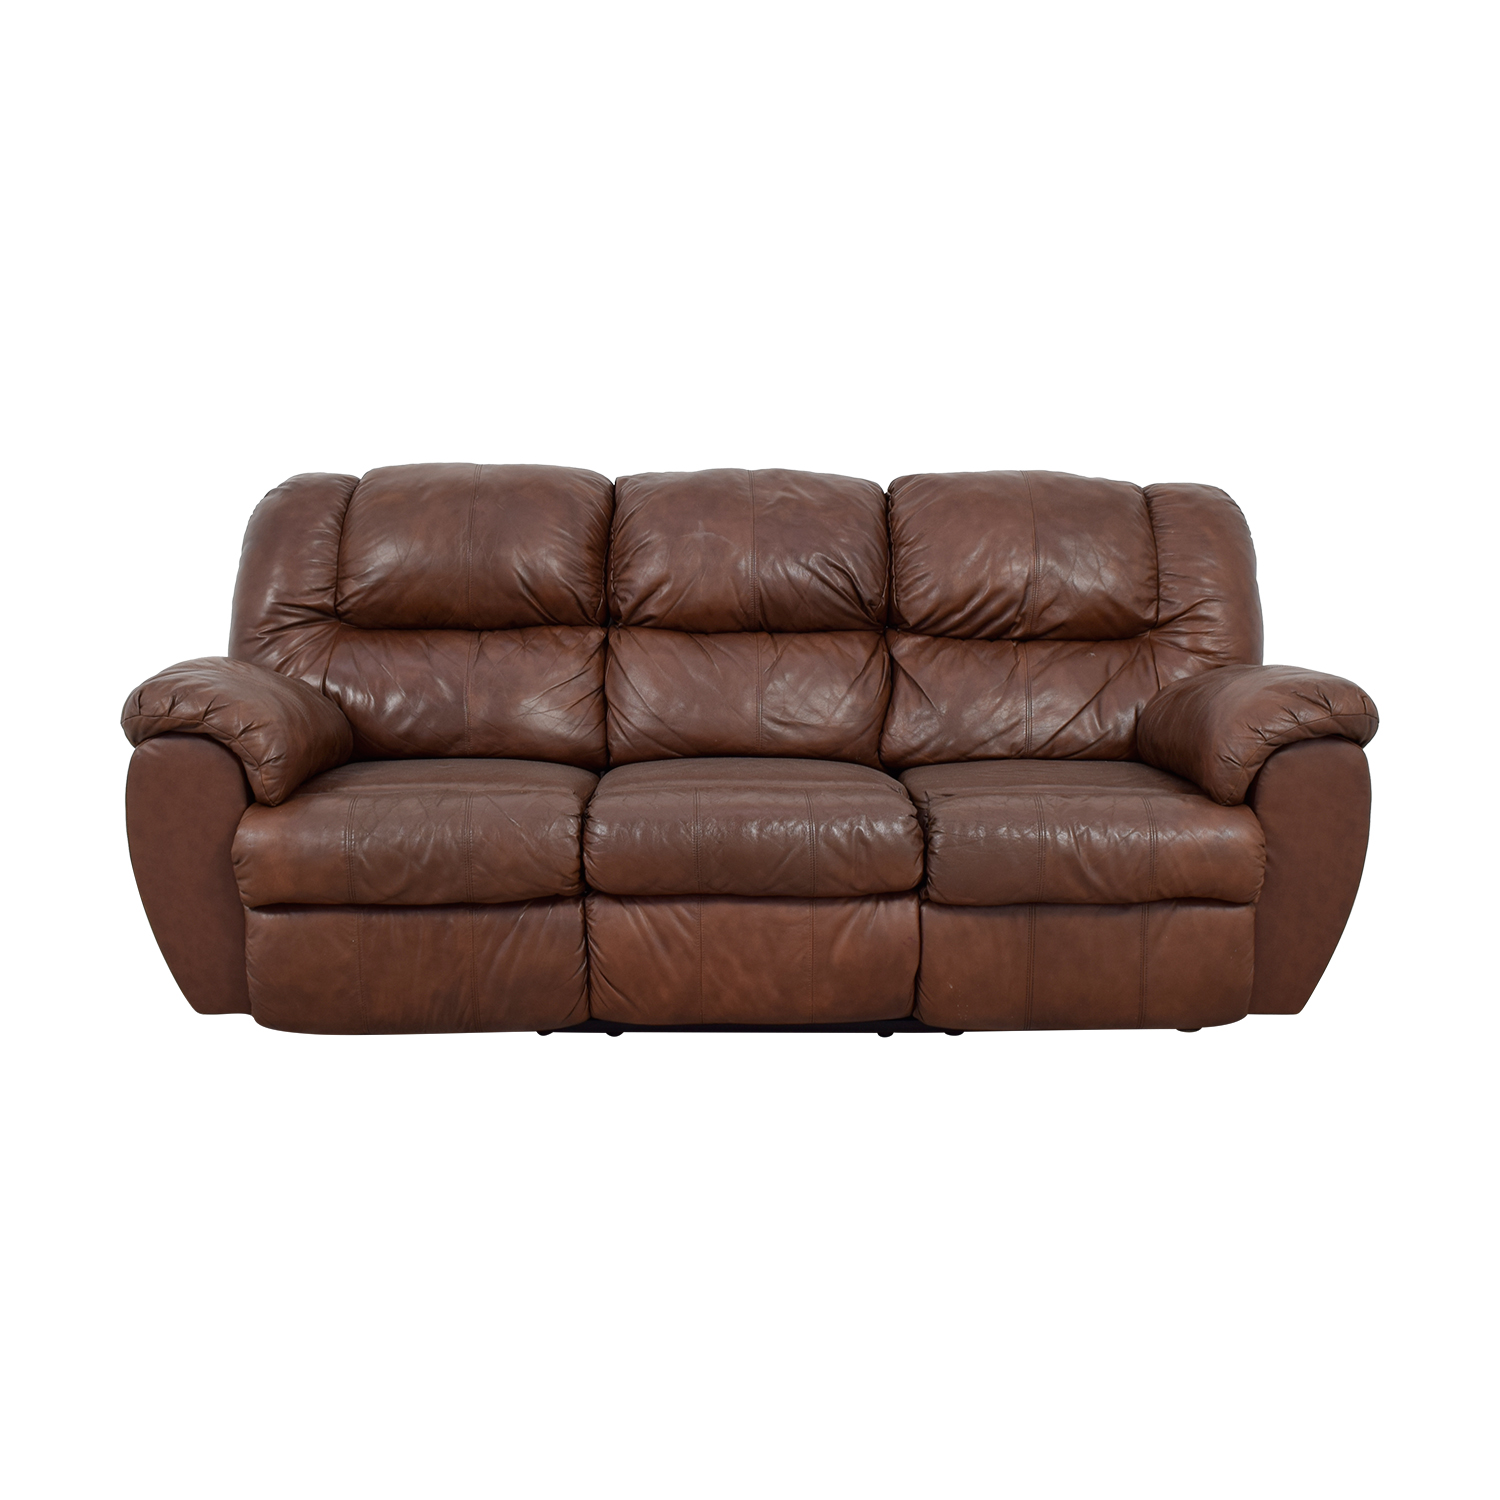 sofitalia leather sofa claremore ashley 64 off dark brown armchair